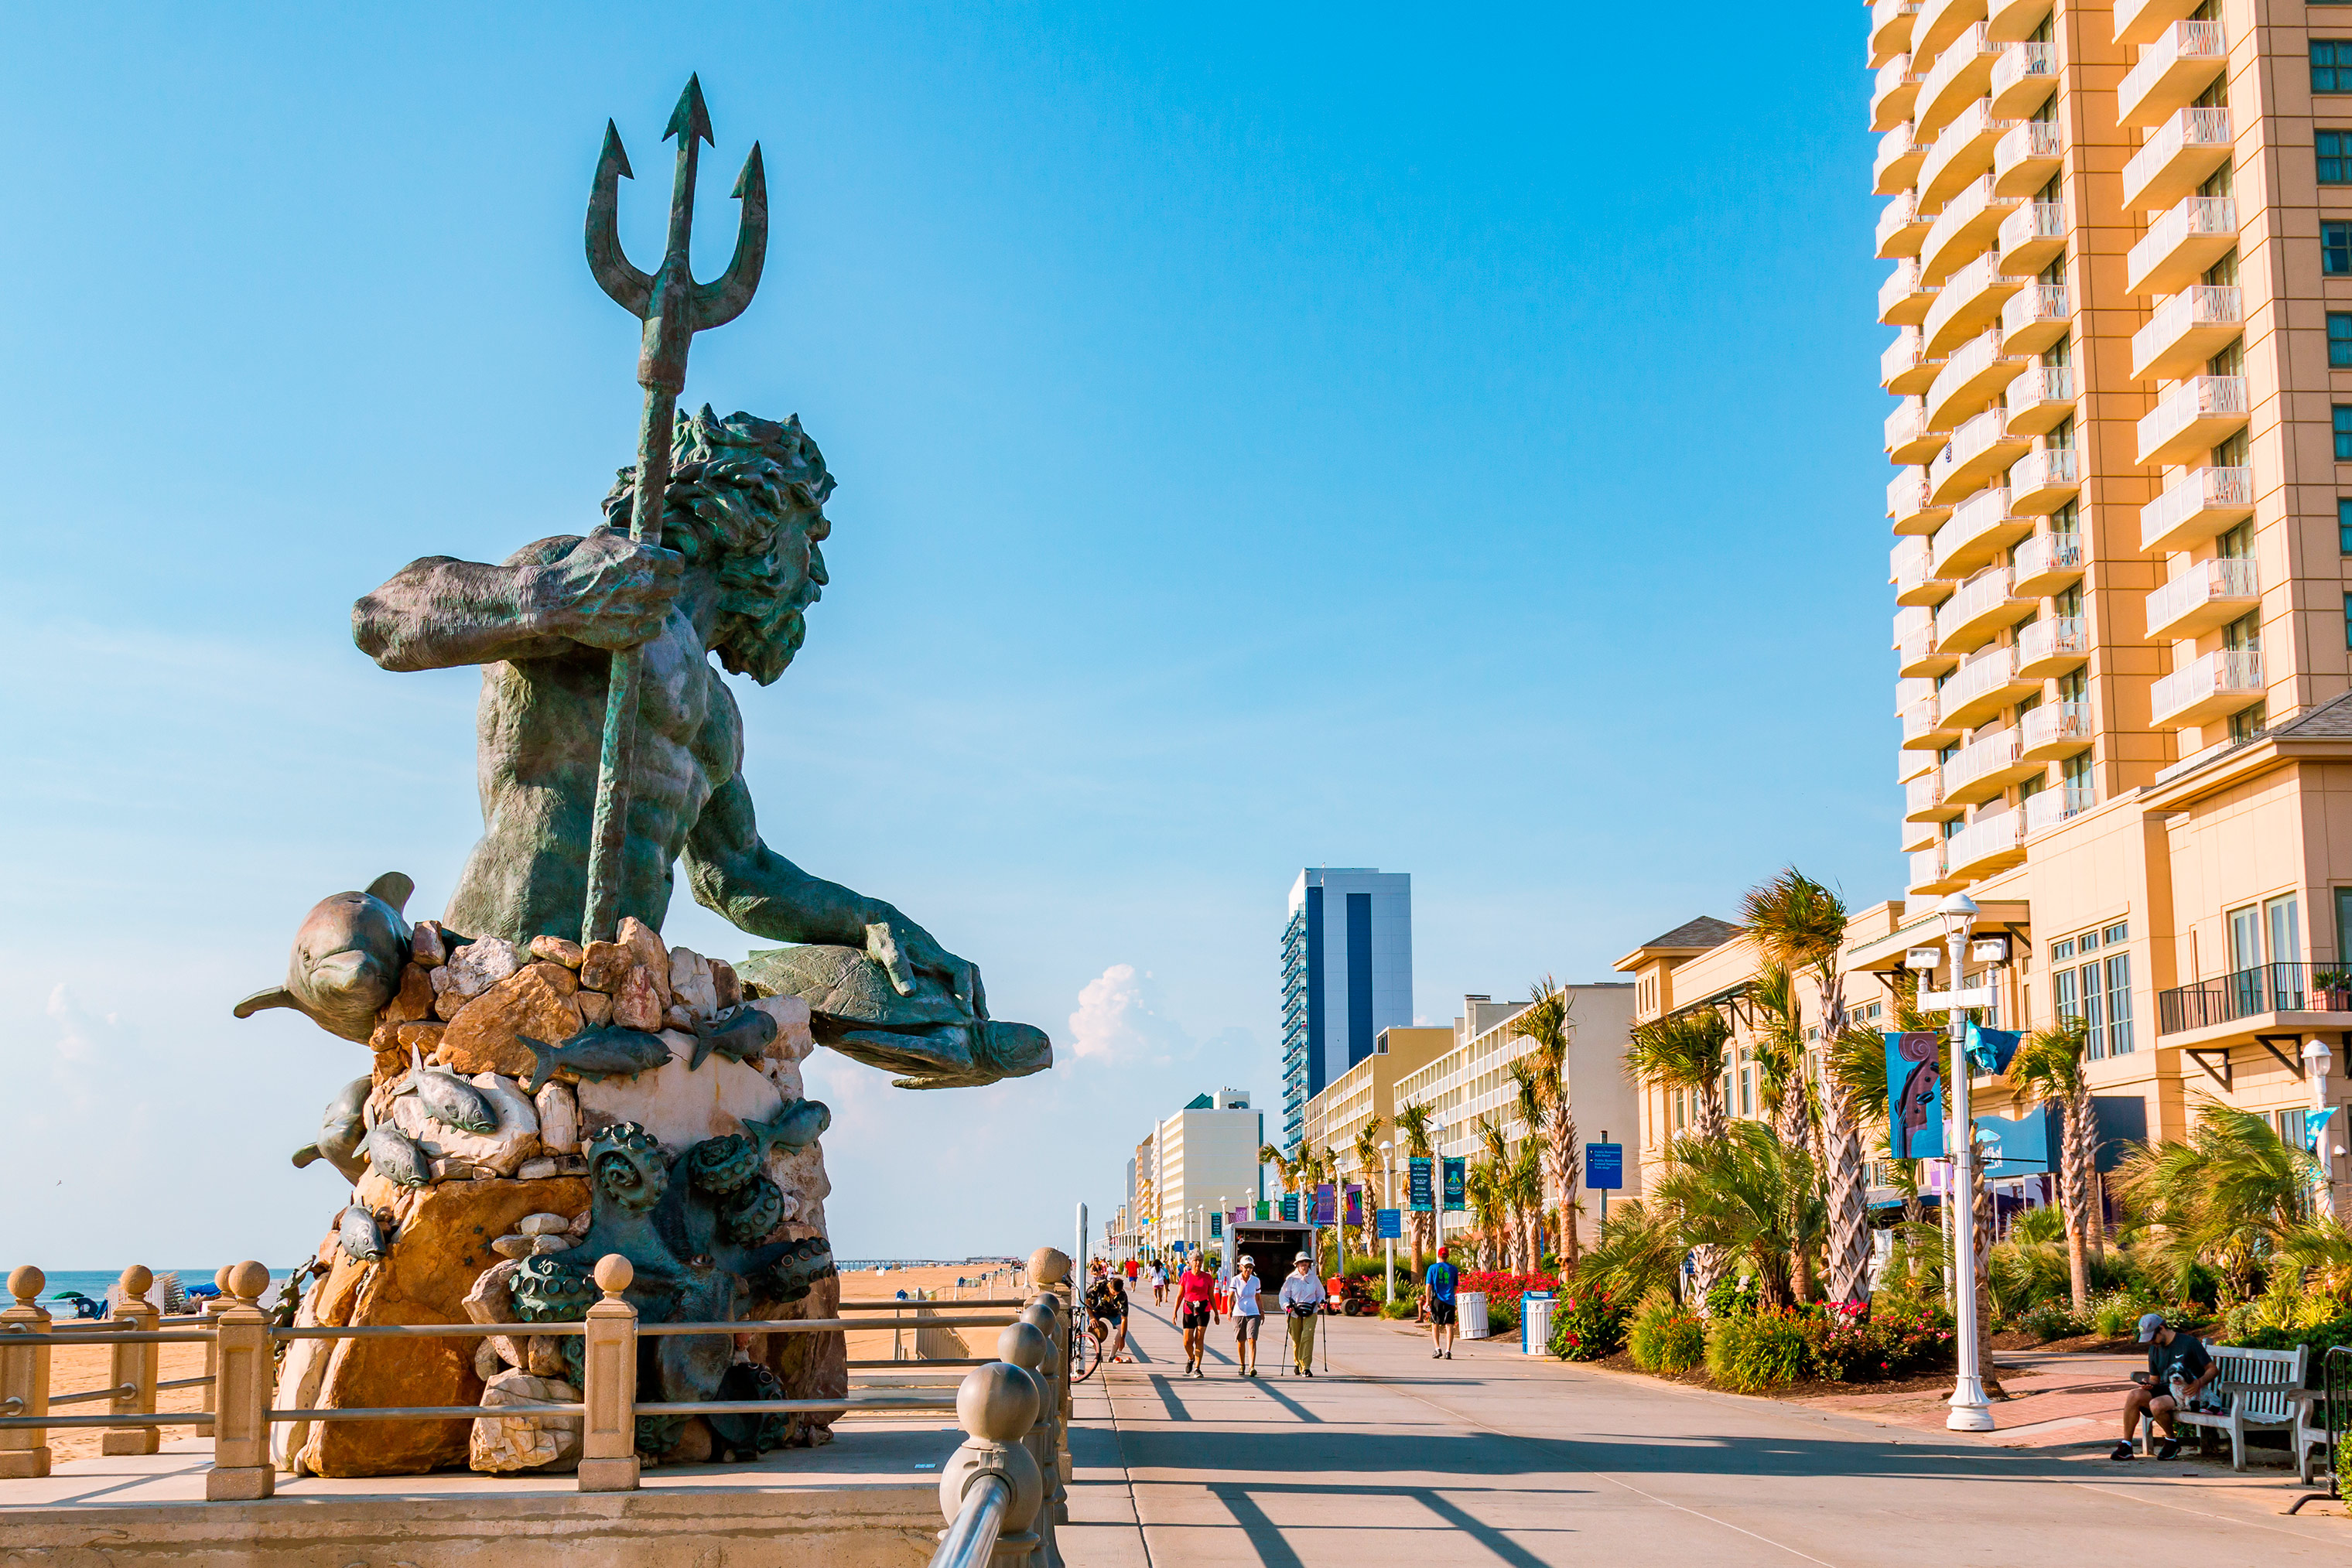 The iconic King Neptune greets visitors on a boardwalk three miles long.